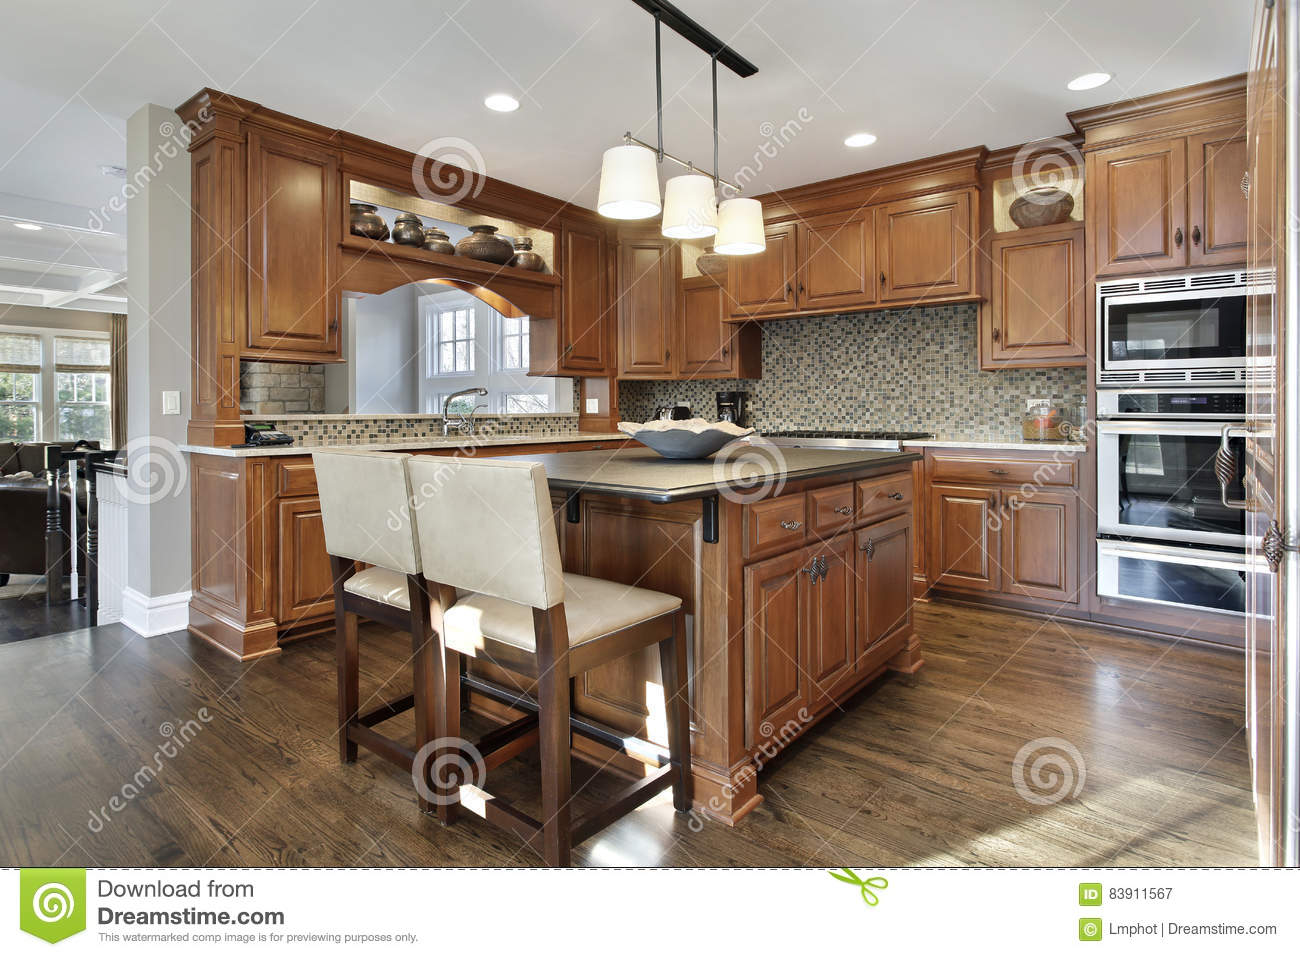 kitchen in luxury home with oak cabinets stock photo   Kitchen With Oak Wood Cabinetry Stock Image - Image of ...